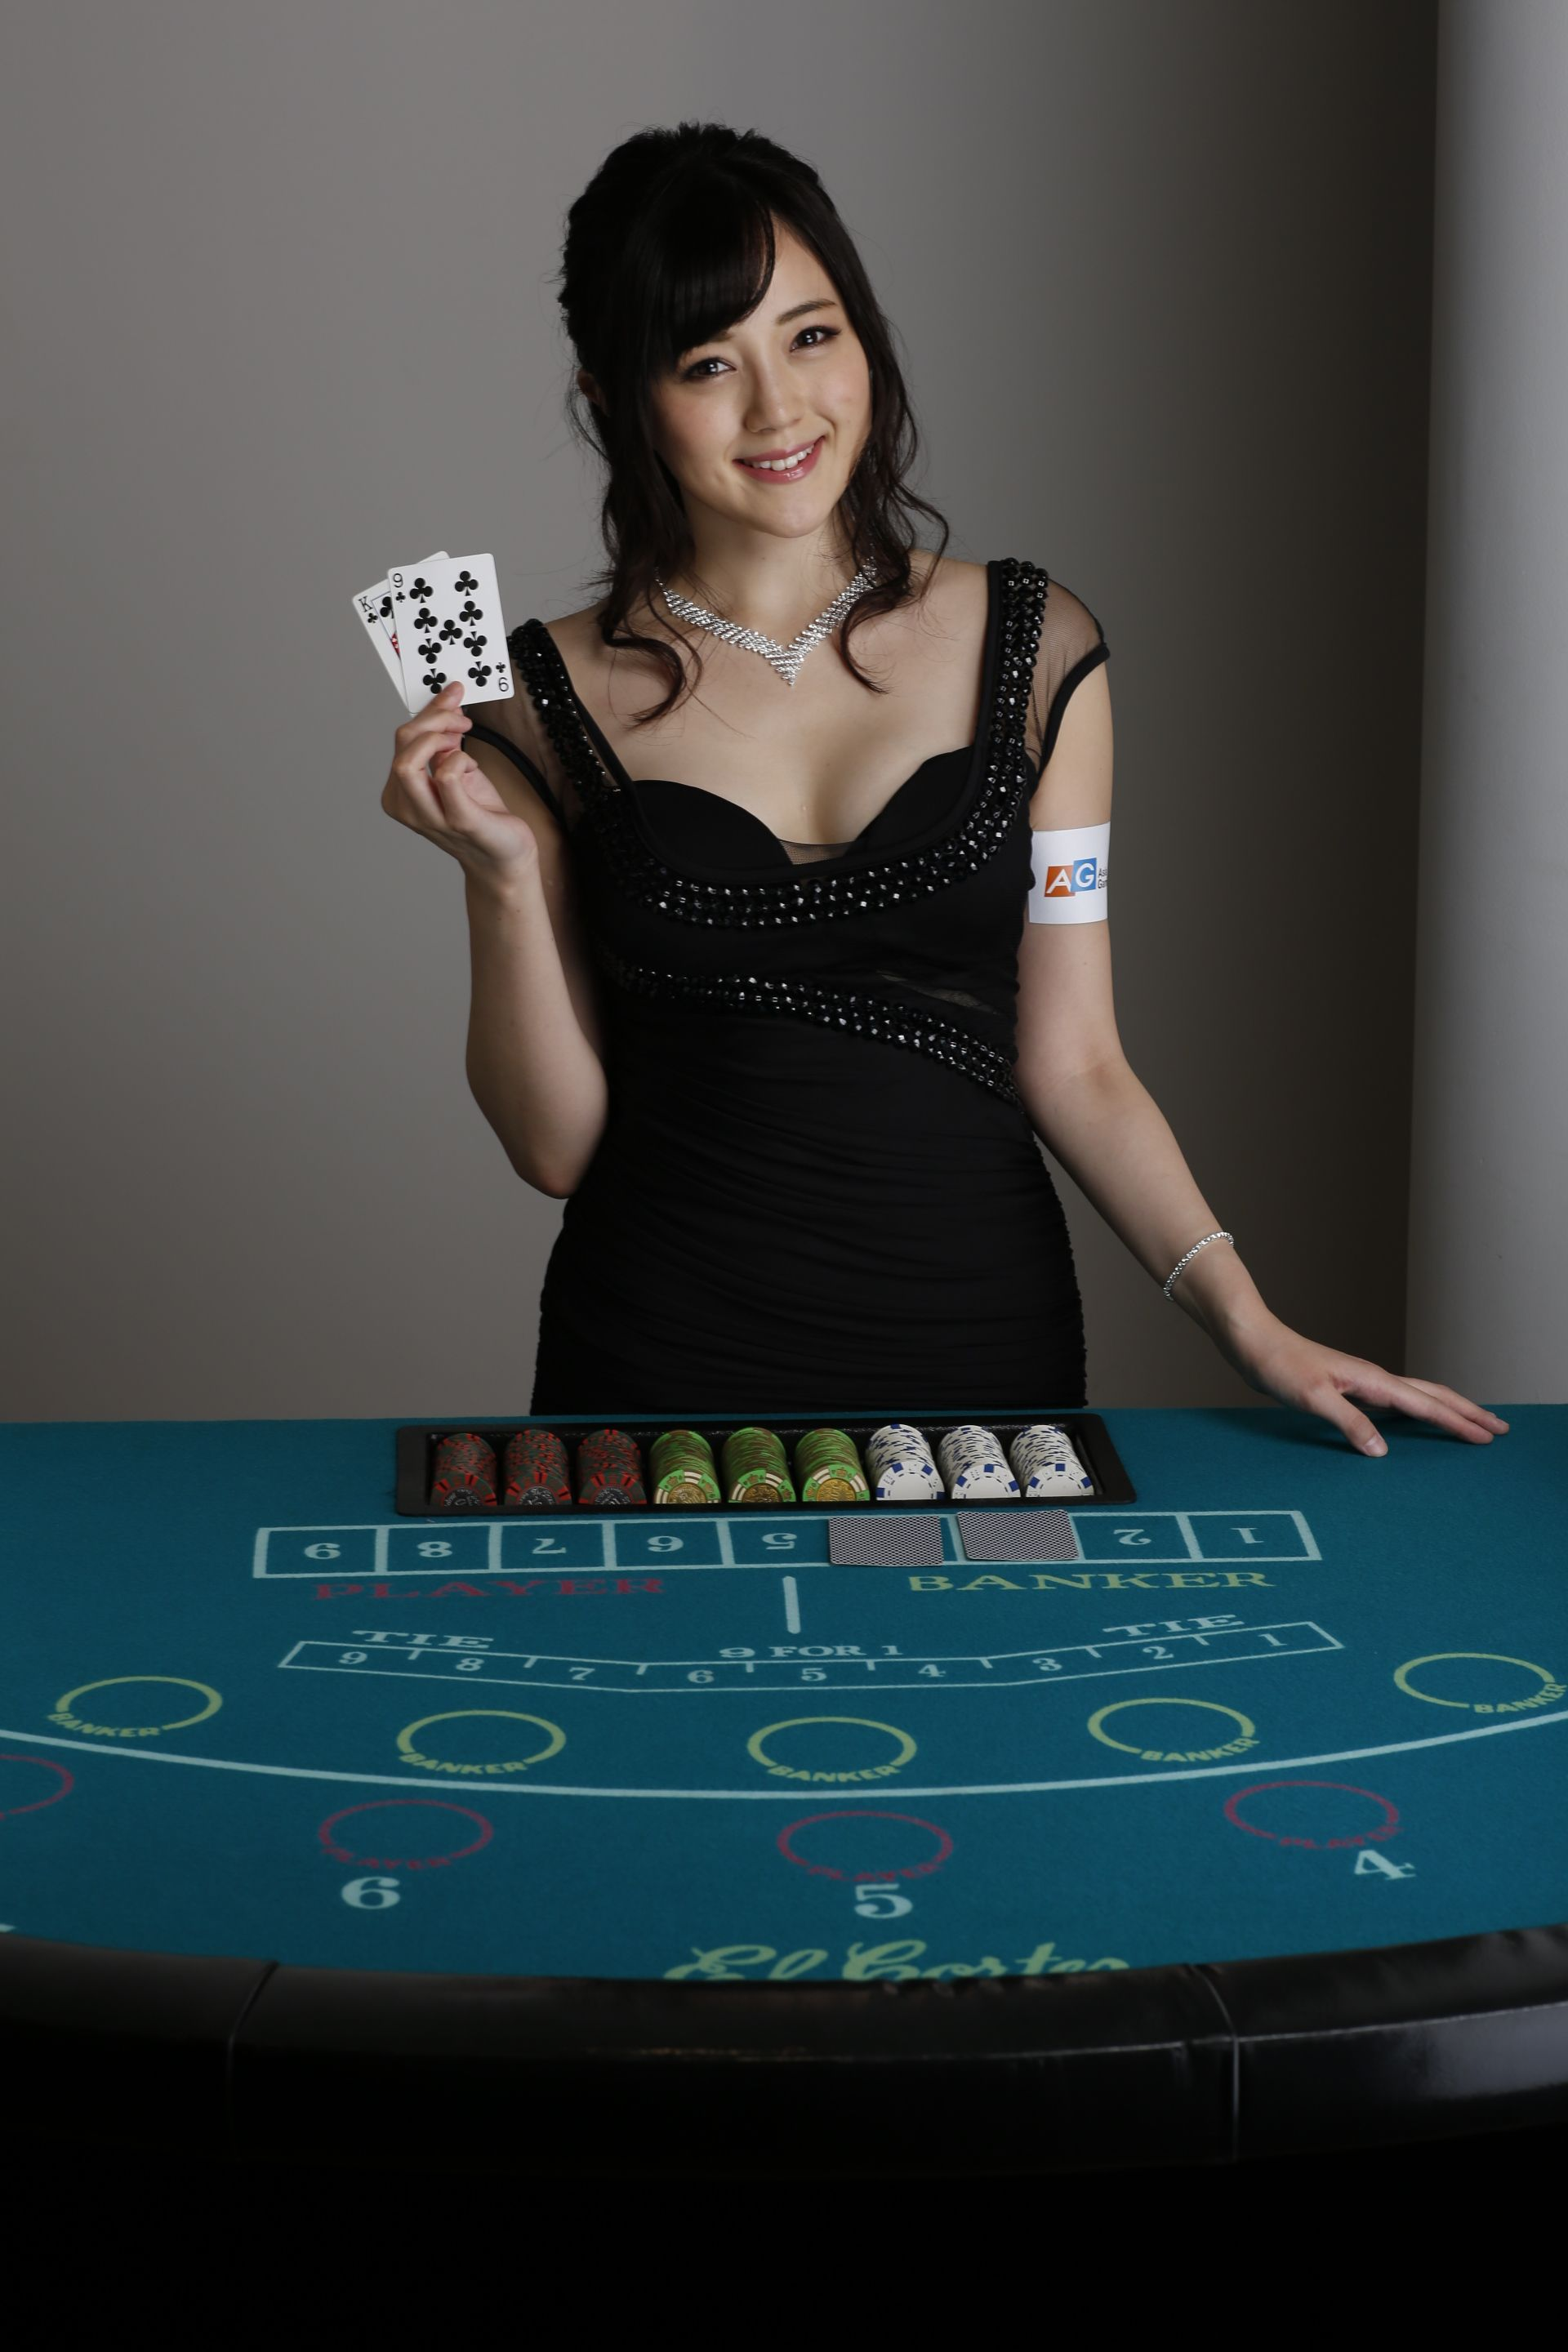 Online Casinos That Accept Japanese Players